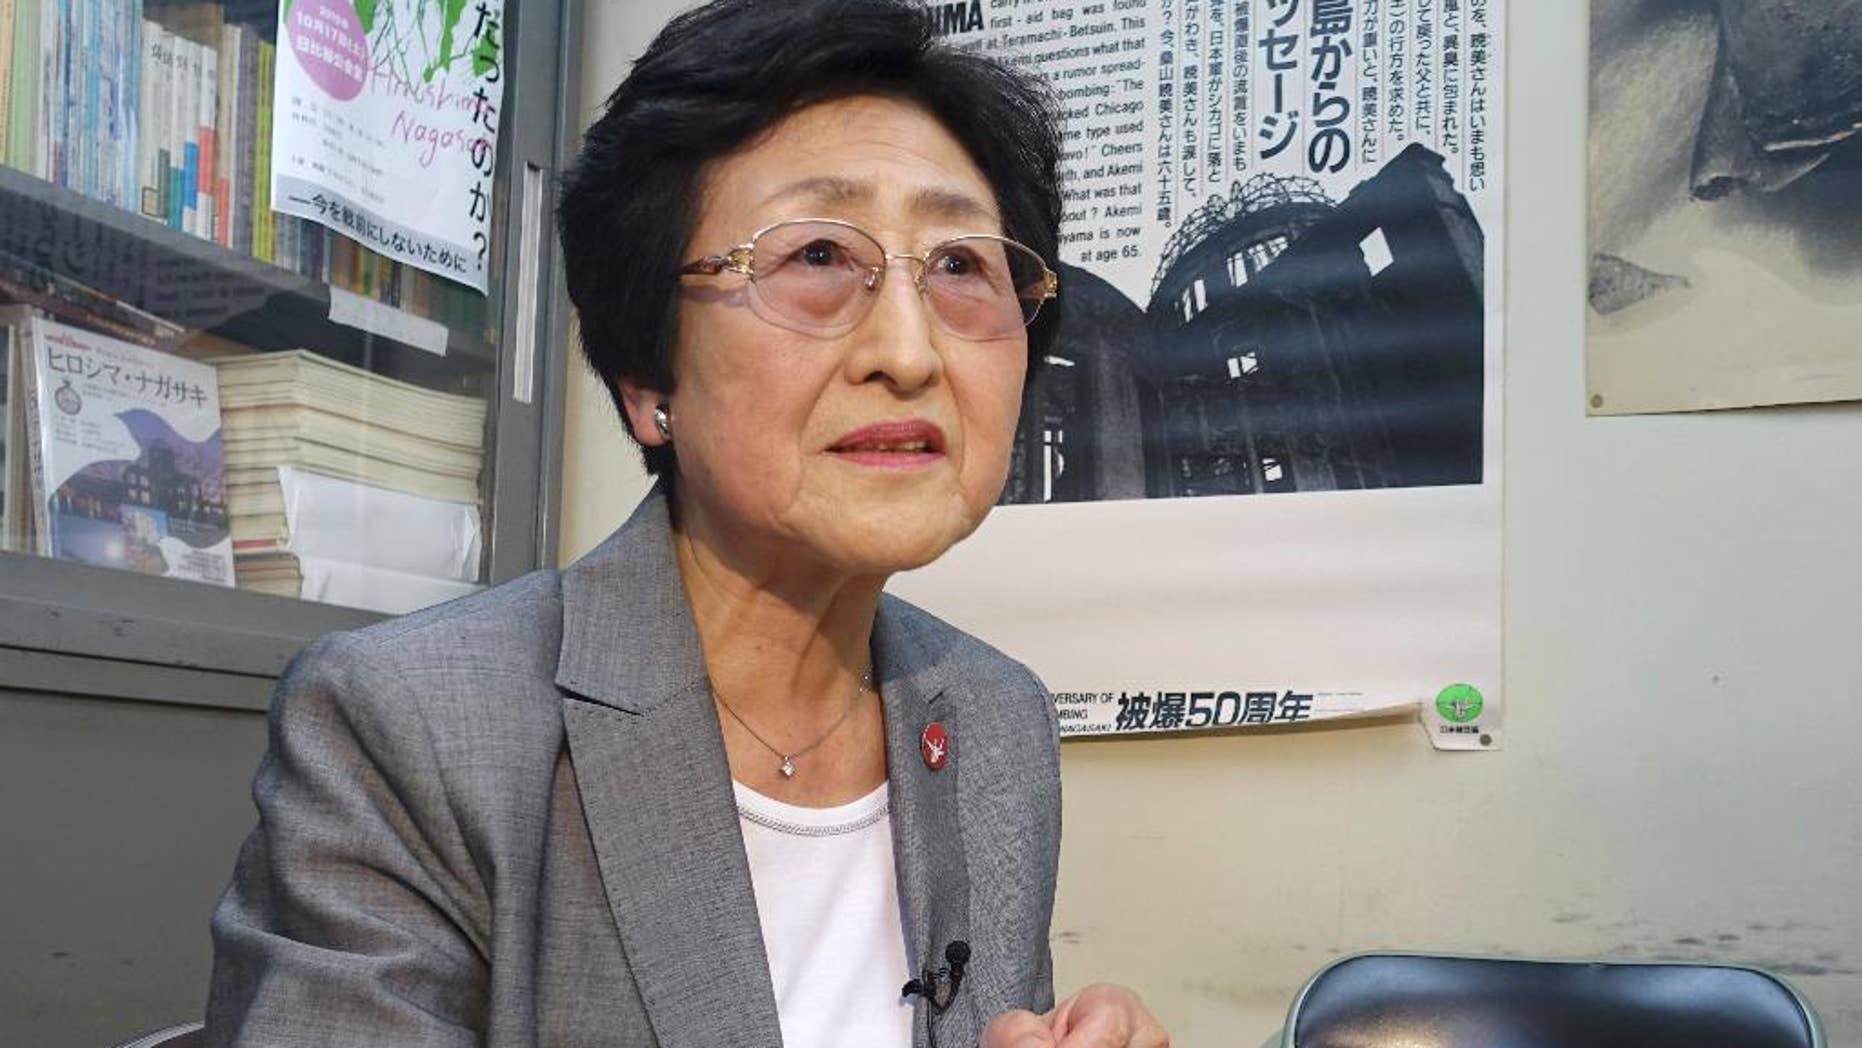 "In this Thursday, May 12, 2016 photo, Michiko Kodama, 78, a survivor of the Hiroshima atomic bombing, speaks during an interview at an office of a survivors' organization in Tokyo. A flash in the sky over Hiroshima, Japan, in 1945 caused a lifetime of ordeal for an elementary school student Michiko Kodama. For her World War II will not be over until a nuclear-free world is achieved and President Barack Obama's visit to Hiroshima on Friday is ""just a step in the process."" (AP Photo/Mari Yamaguchi)"